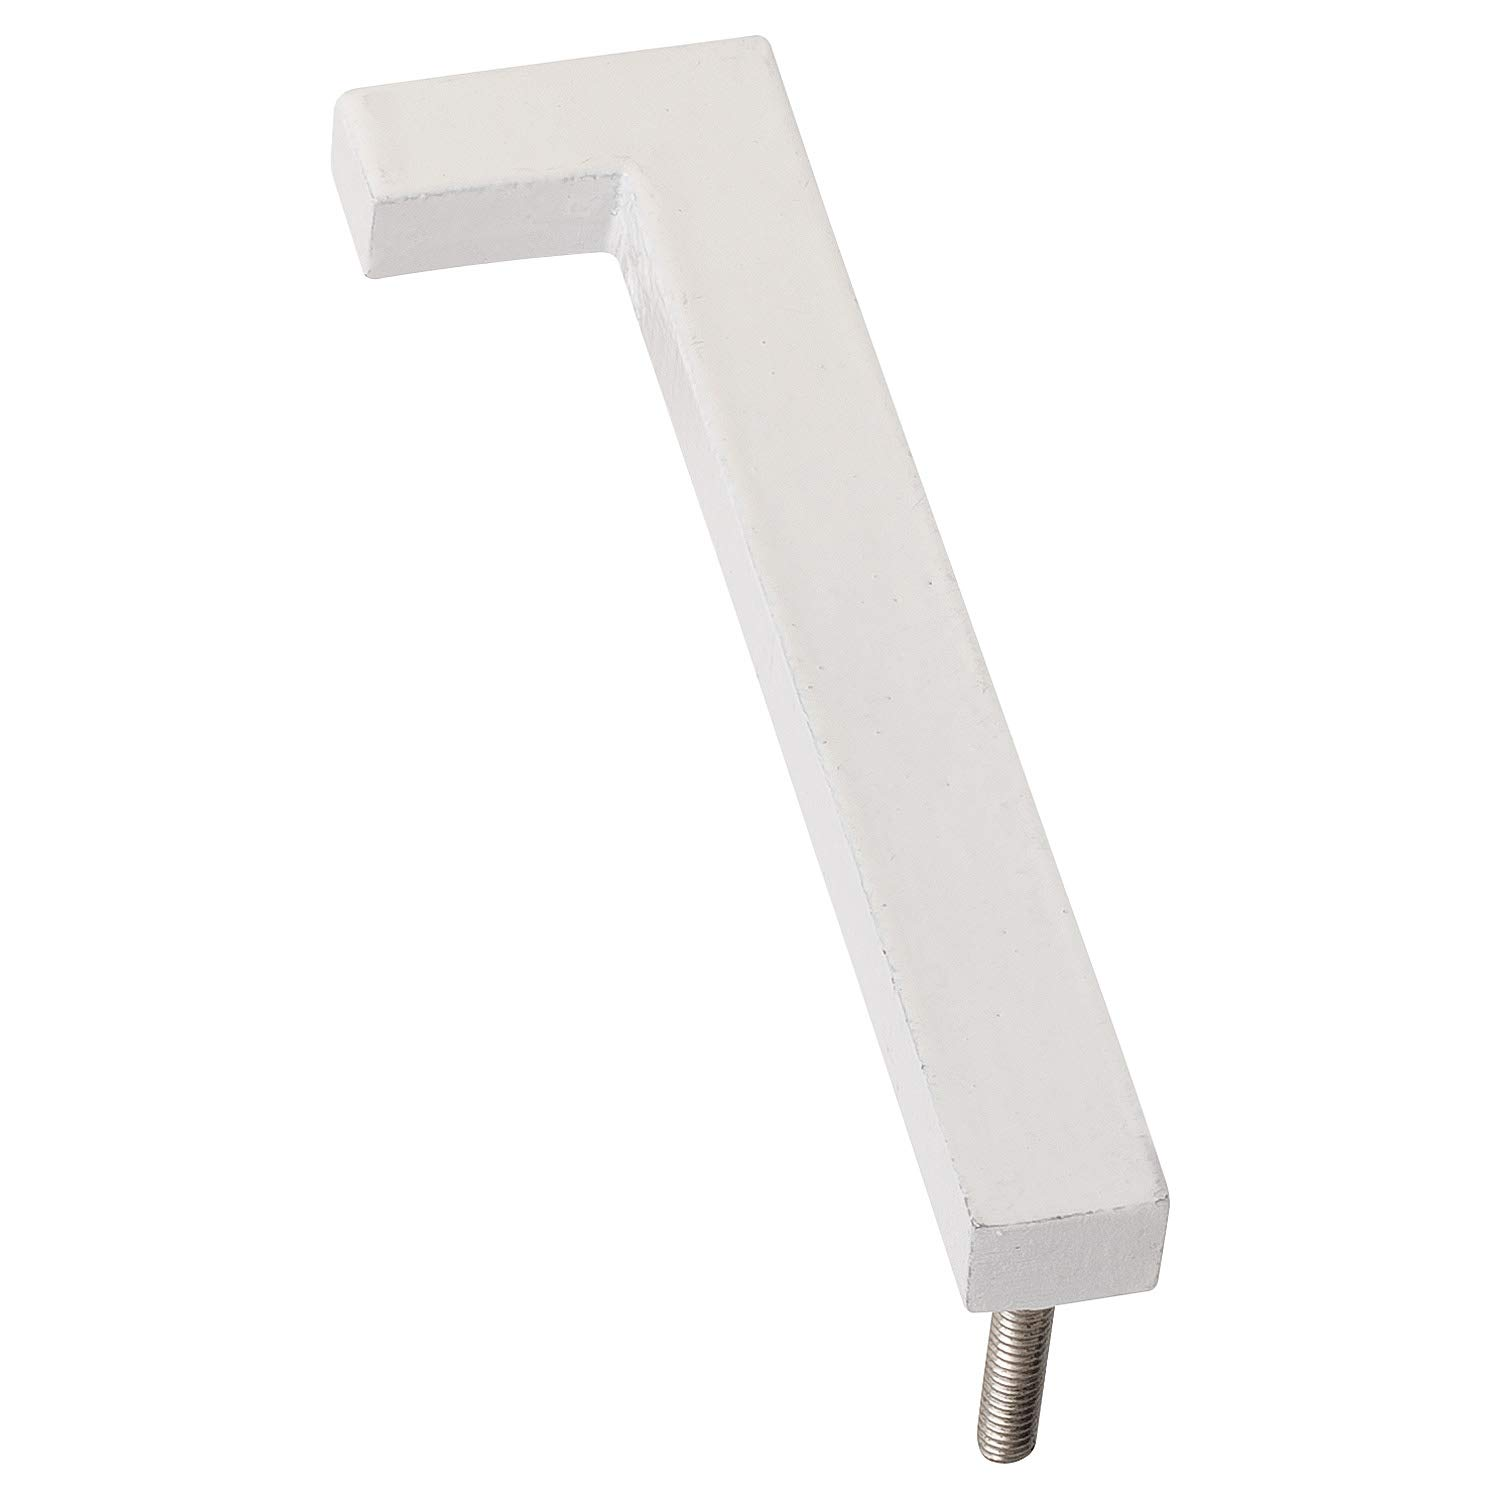 Montague Metal Products MHN-10-1-F-WE1 Floating House Number, 10 inches x 2.88 inches x 0.375 inches White